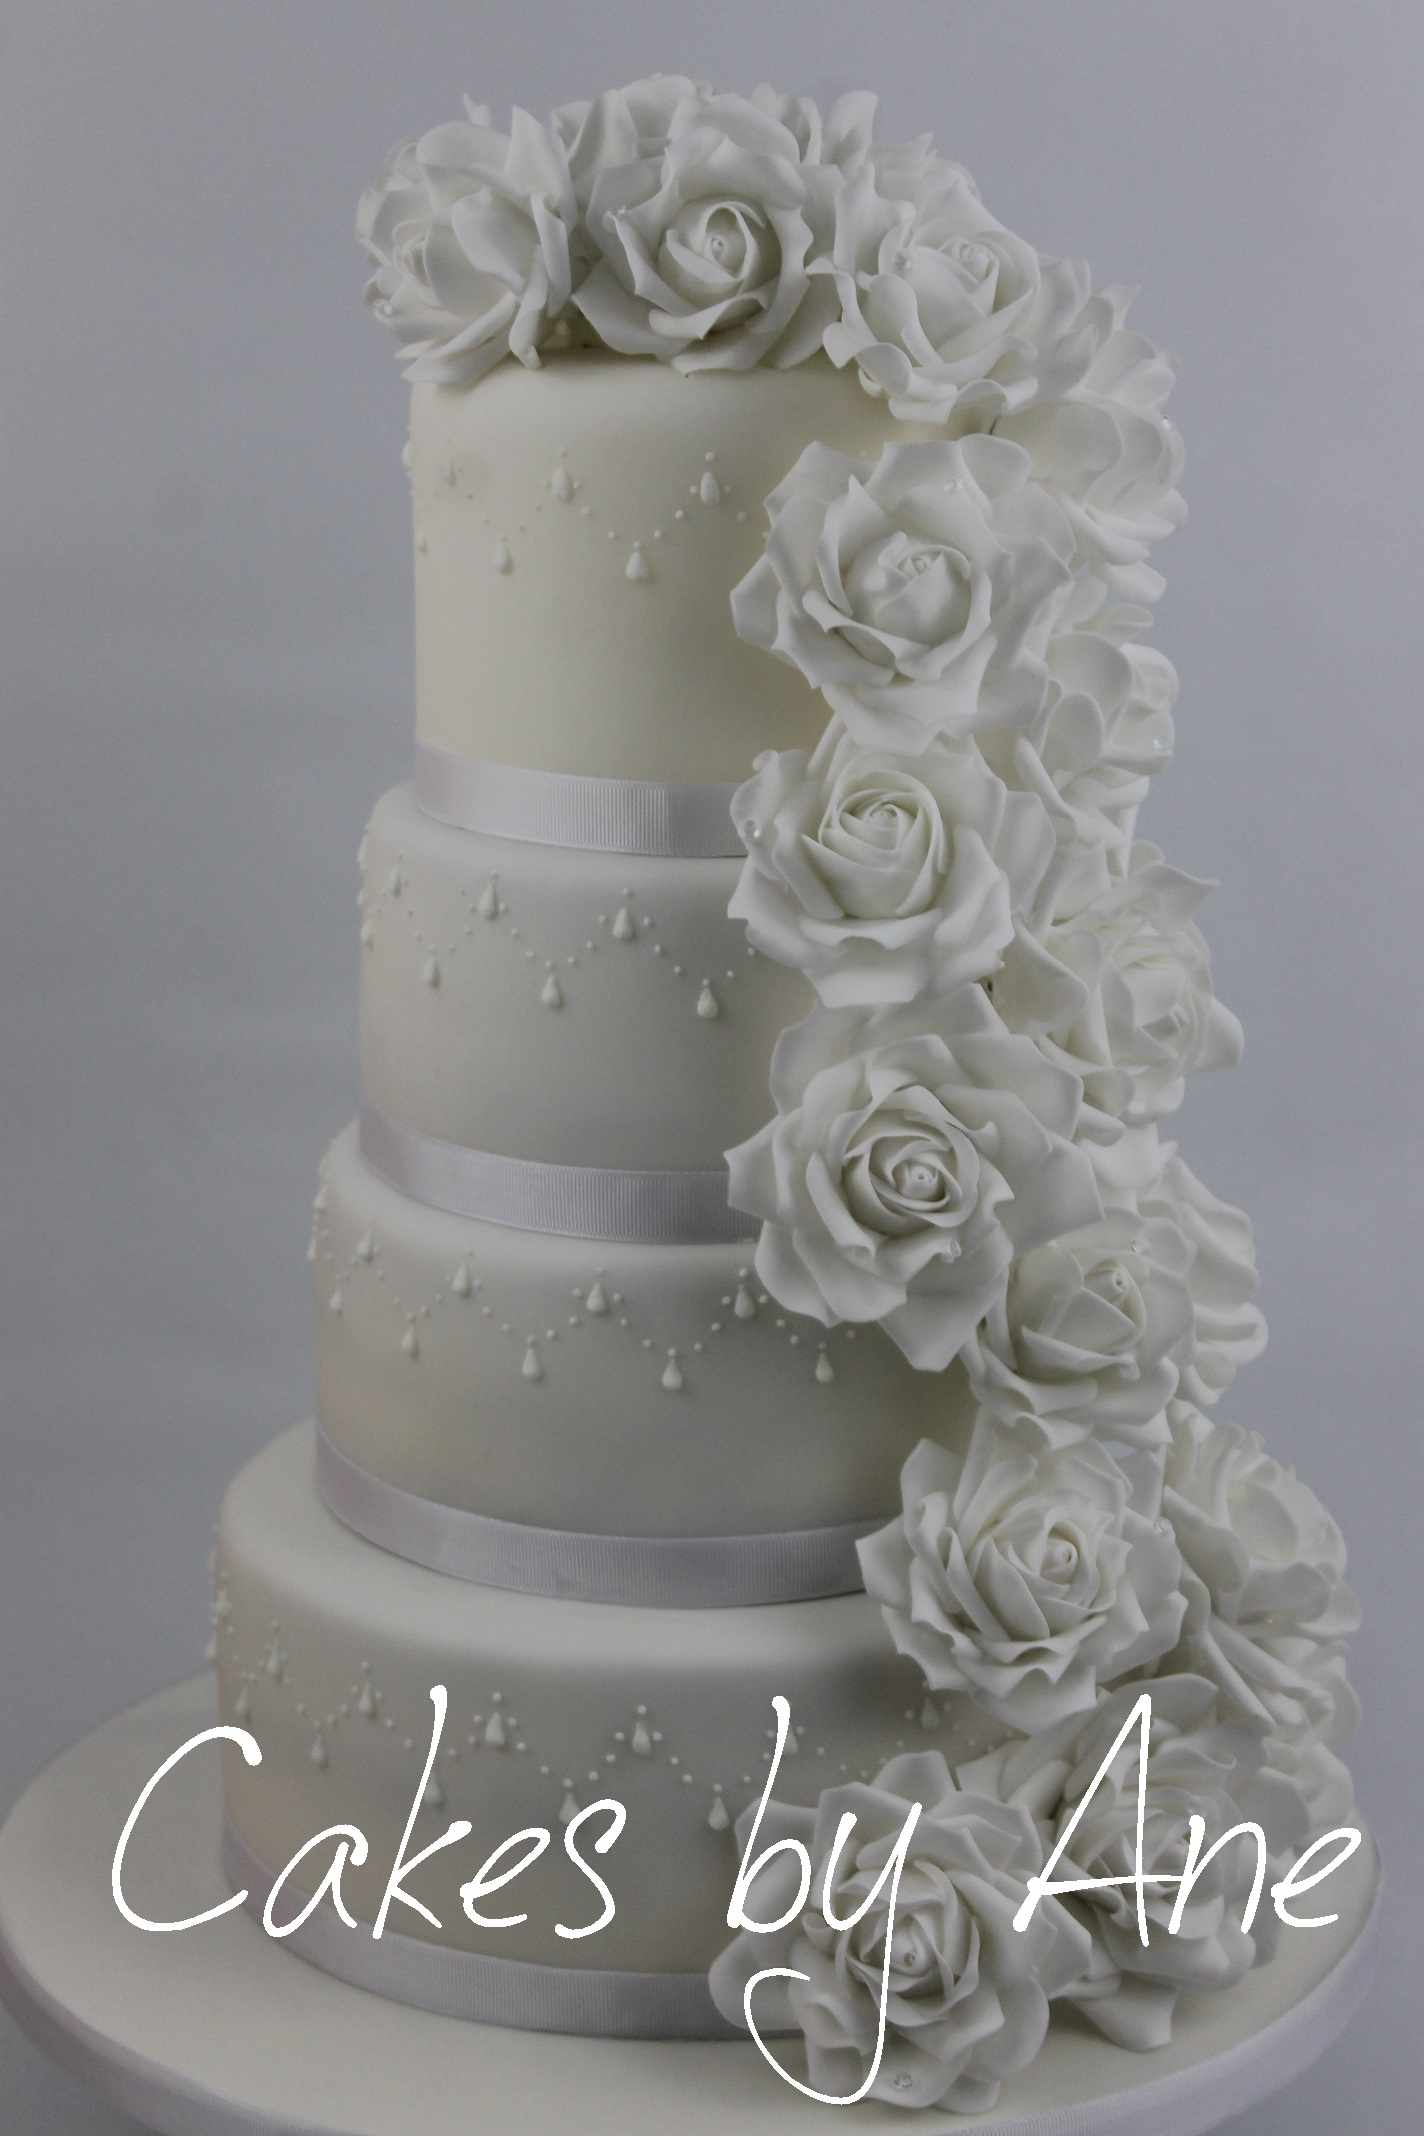 An Elegant Wedding Cake With A Flowing Arrangement Of White Roses